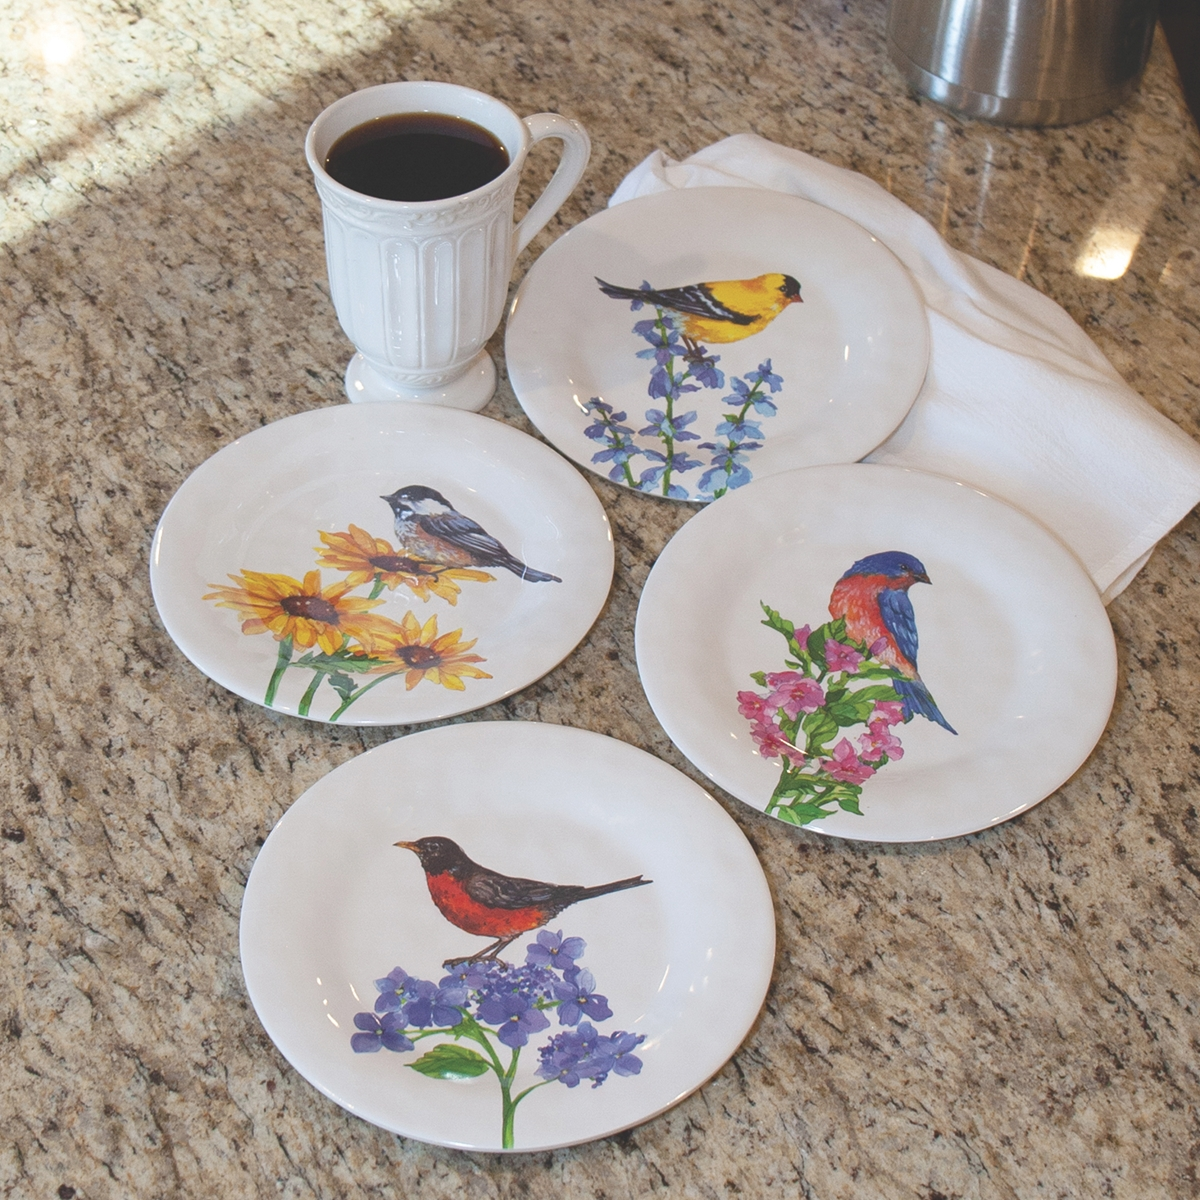 Songbird Salad Plate Set